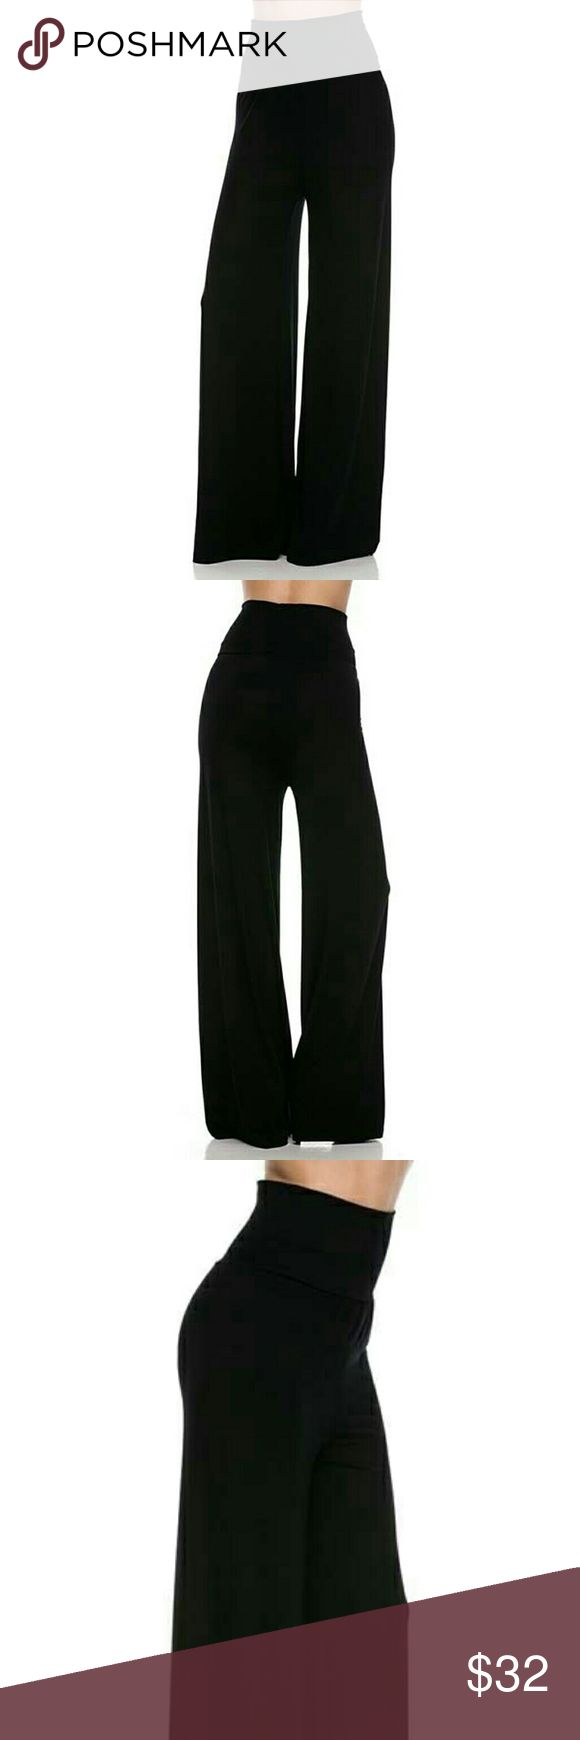 Perfect Jersey Wide Leg Palazzo Pants Perfect Jersey Wide Leg Palazzo Pants with Fold Over Waist Detail. These awesome pants are the perfect comfy and sexy pair of pants for weekend errands or to dress up for a night out. Got Style Pants Wide Leg